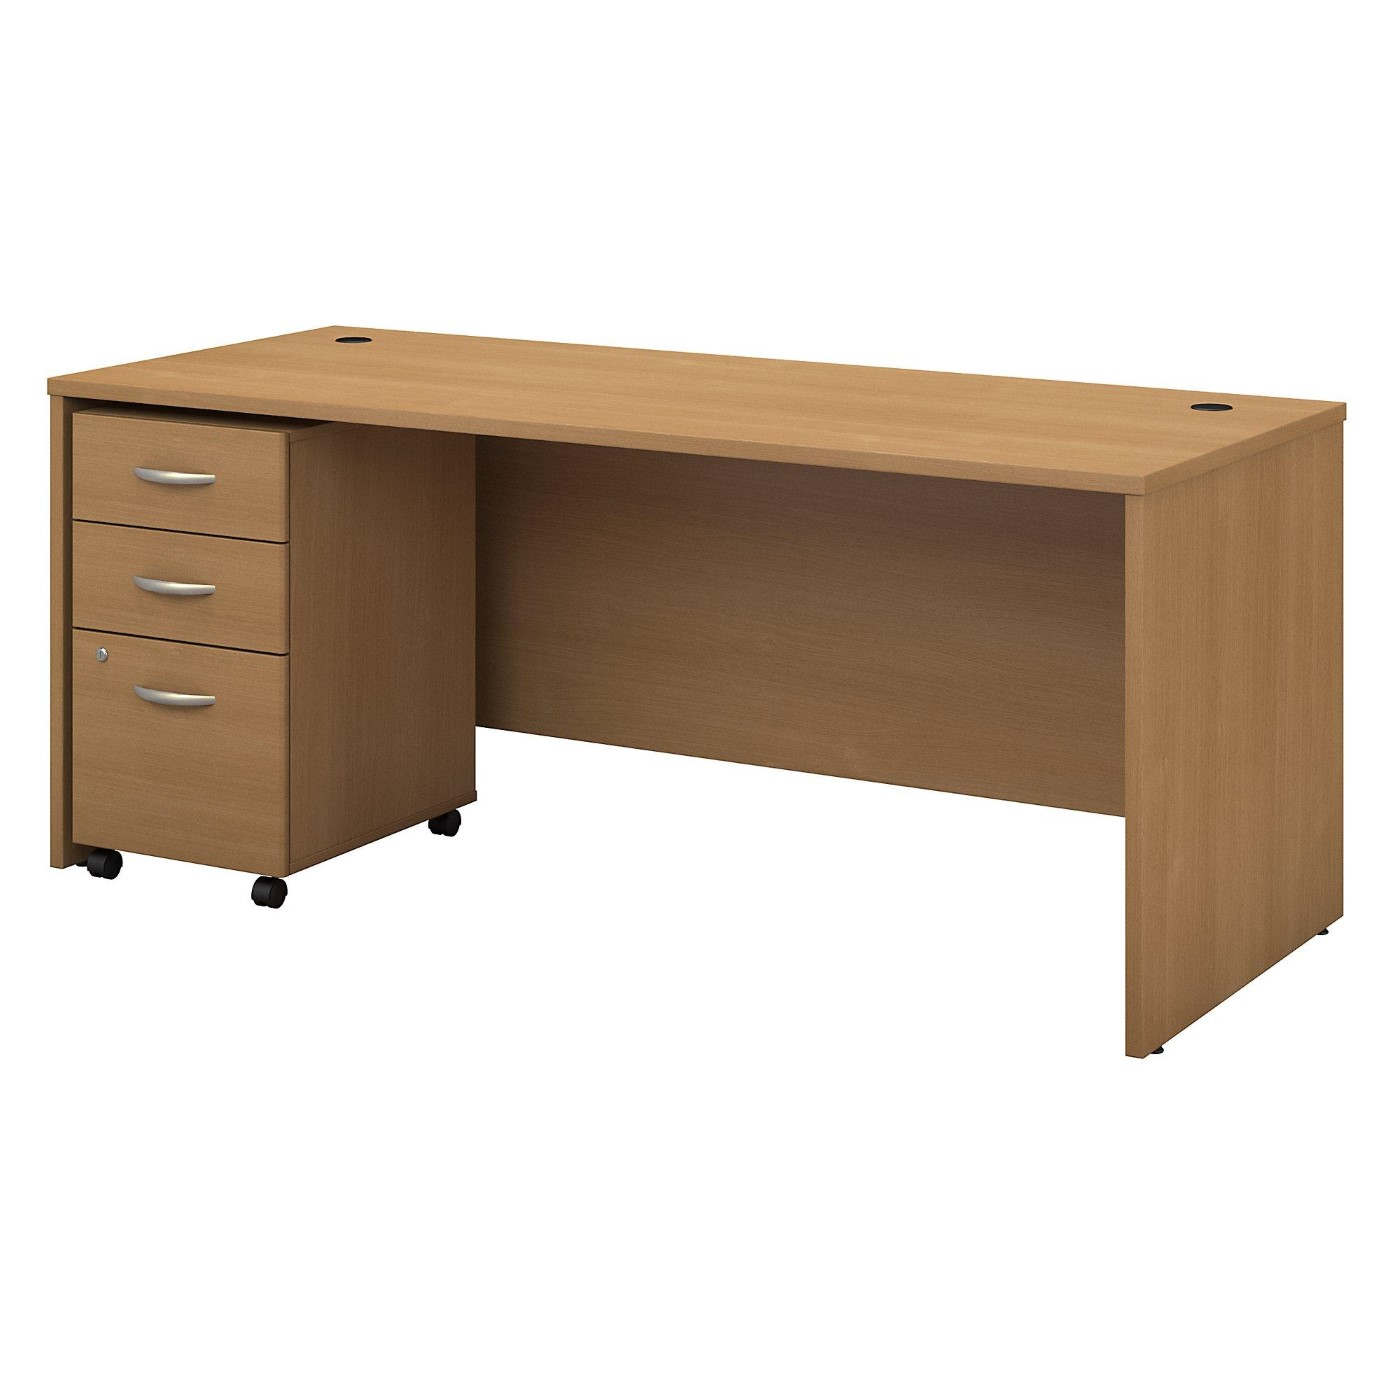 BUSH BUSINESS FURNITURE SERIES C 72W X 30D OFFICE DESK WITH MOBILE FILE CABINET. FREE SHIPPING  VIDEO BELOW.